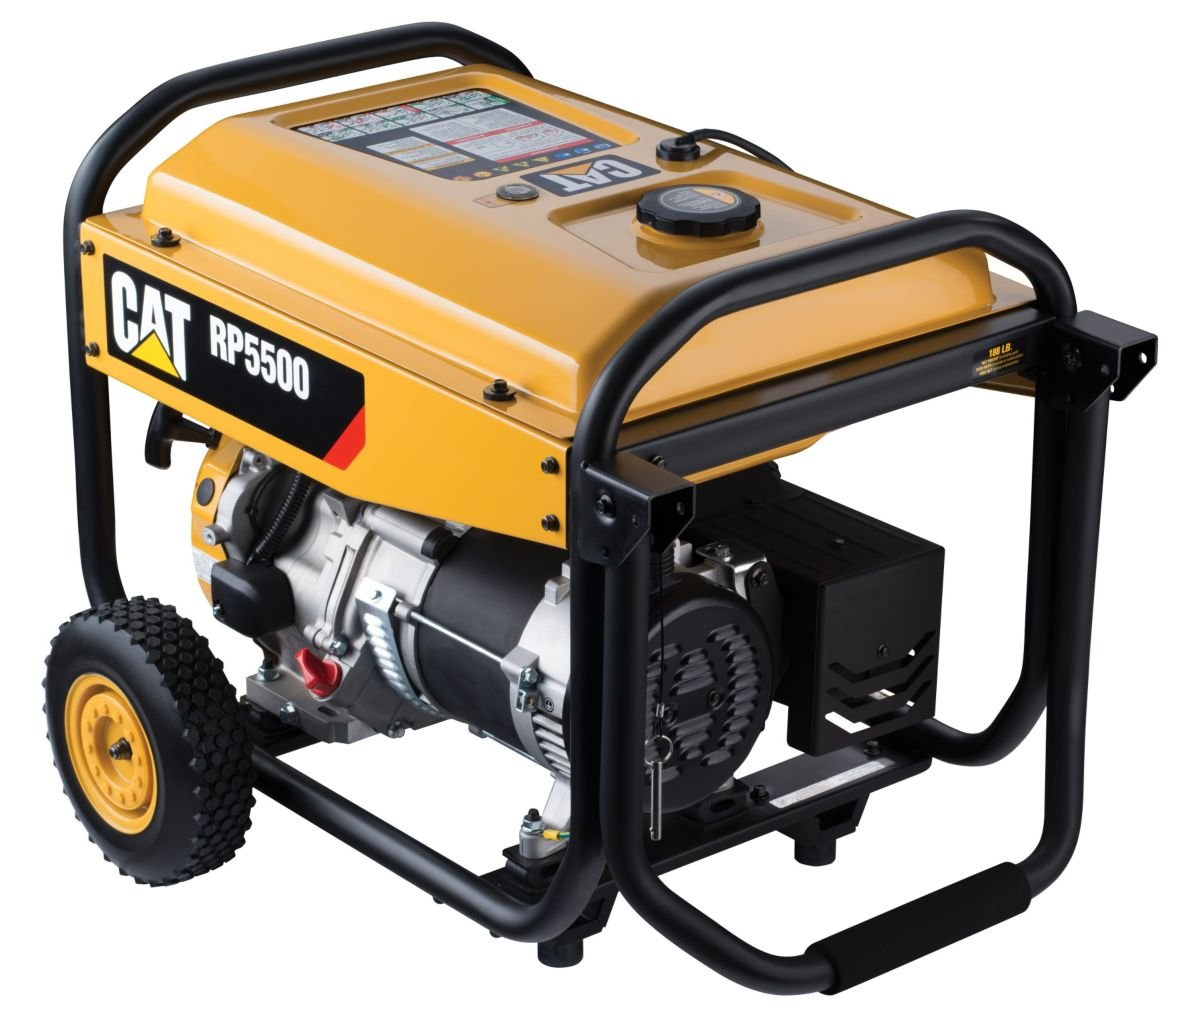 Cat Rp5500 5500 Running Watts And 6875 Starting Generator Avr Circuit Source Abuse Report Diesel Gas Powered Portable 490 6489 Garden Outdoor